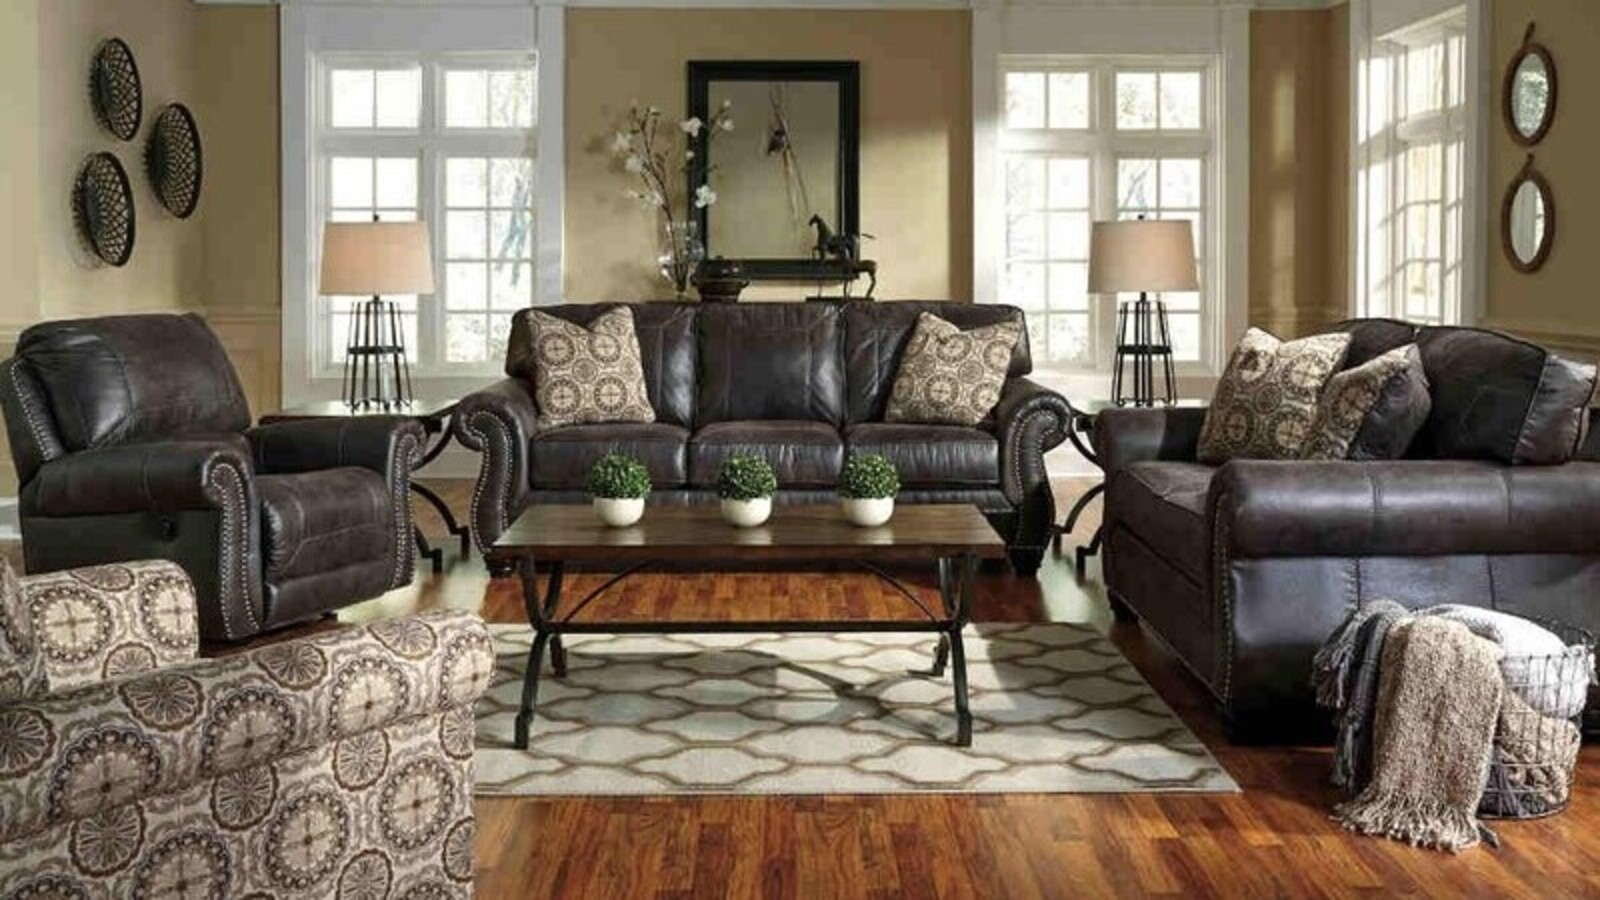 Holiday-Ready with the Ashley Breville Living Room Set - Featured Image 2